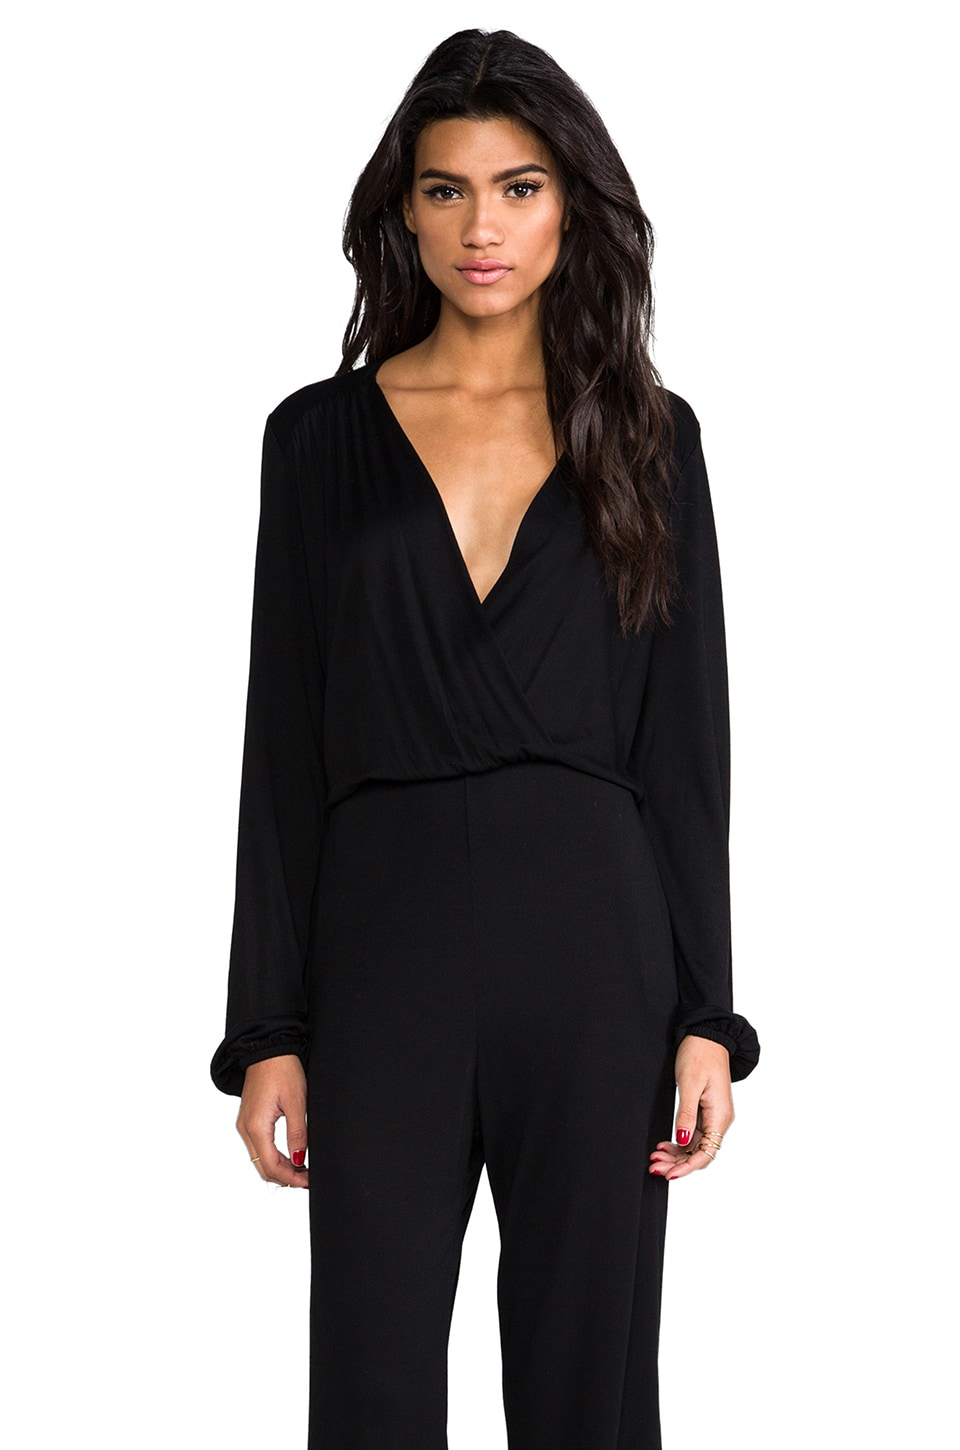 Nightcap BluRose Jumpsuit in Black